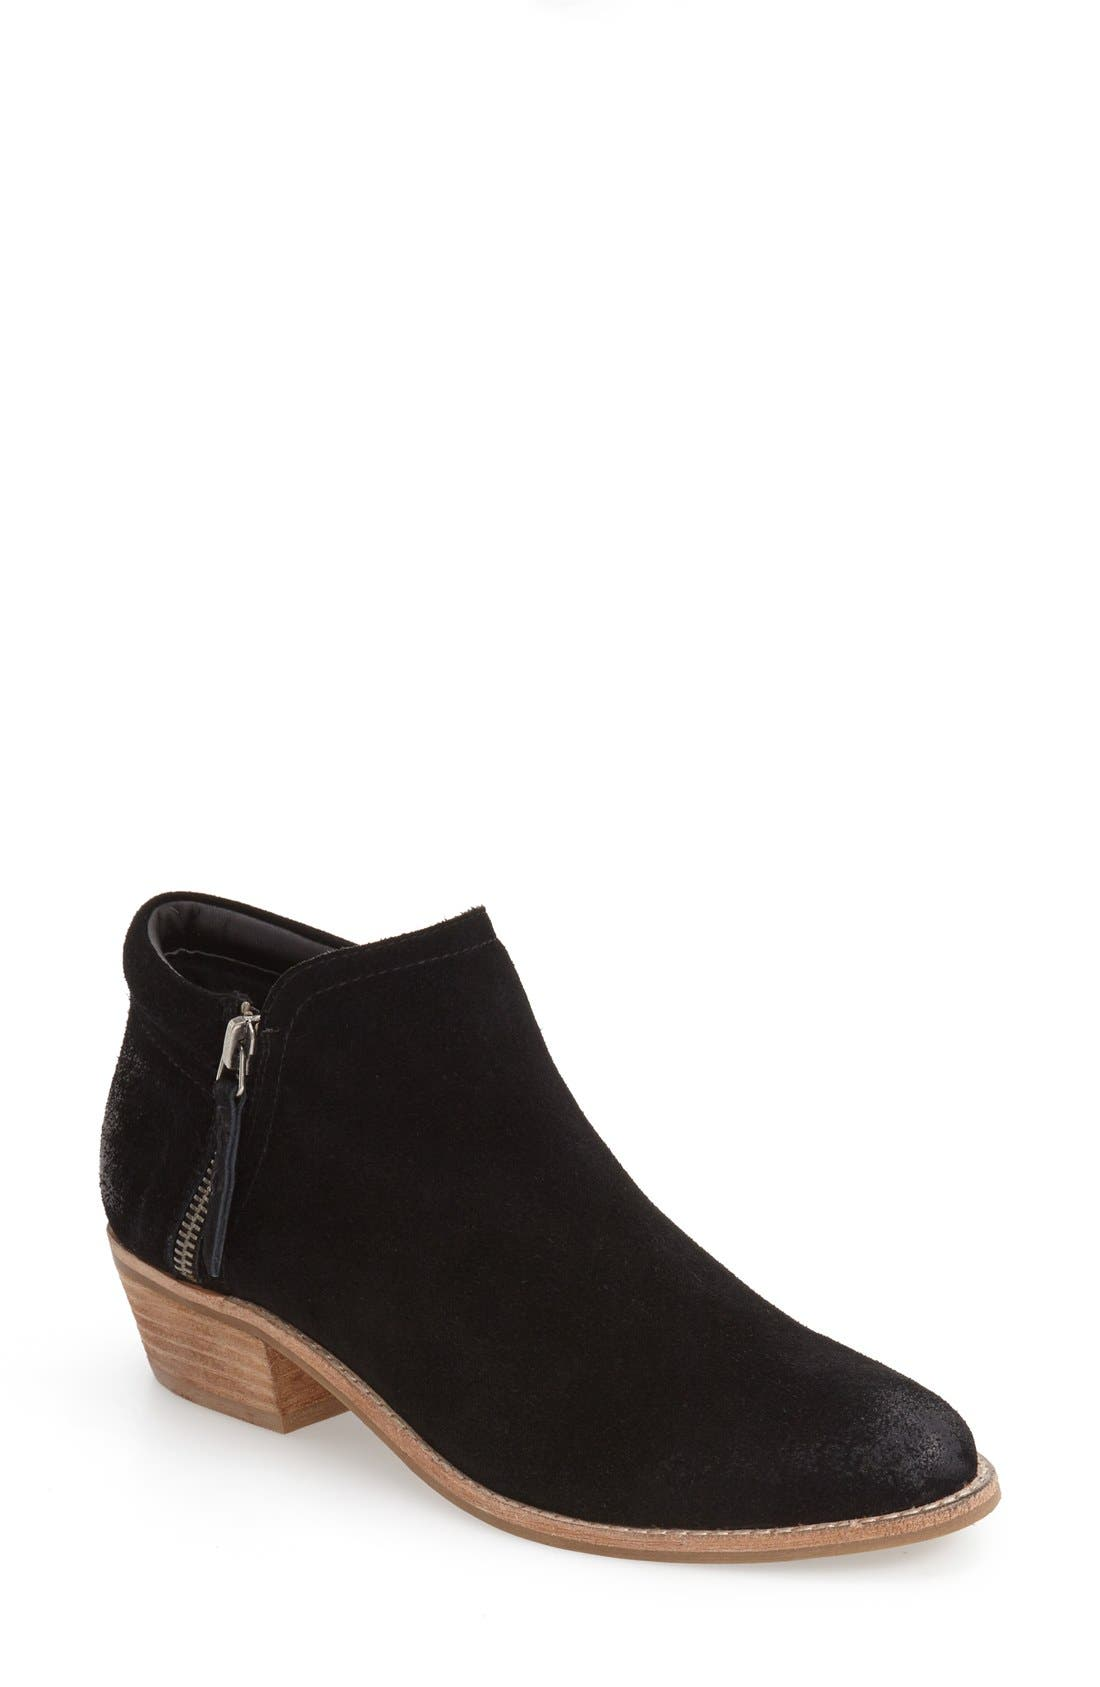 STEVE MADDEN 'Tobii' Bootie, Main, color, 006